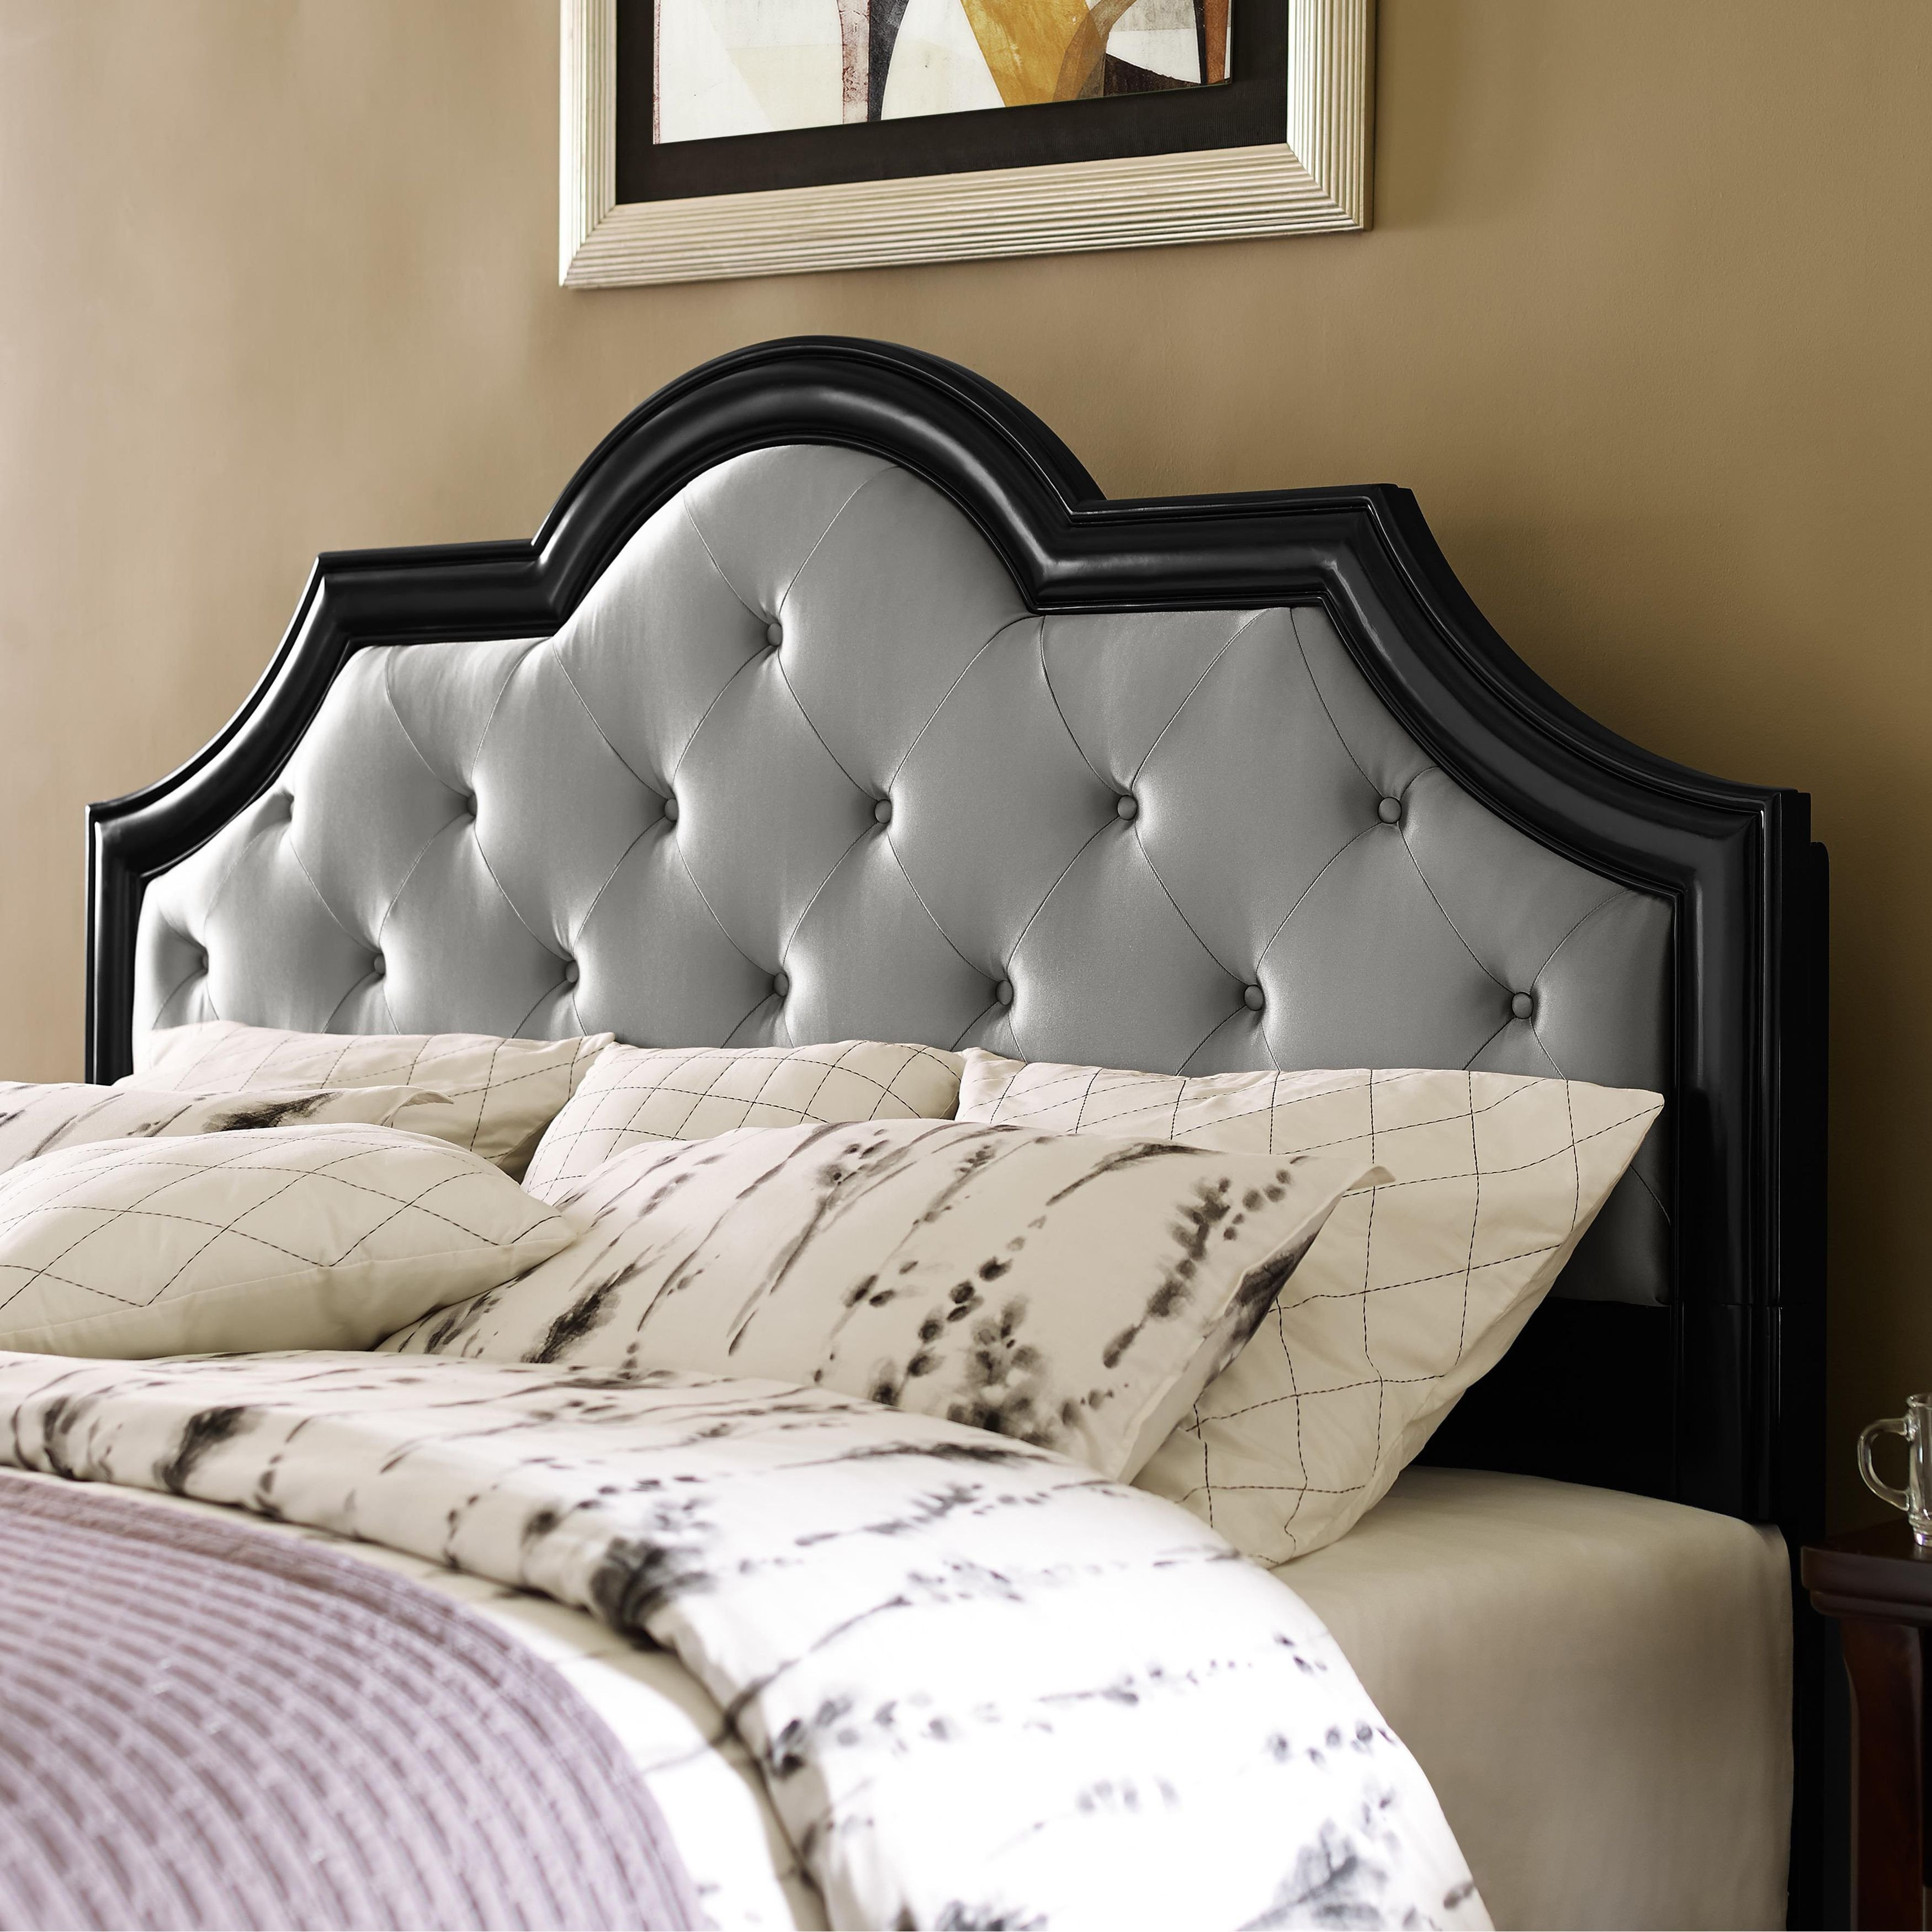 Black and Silver Bedroom Set Luxury Give Your Bedroom A Regal Update with the Black and Silver